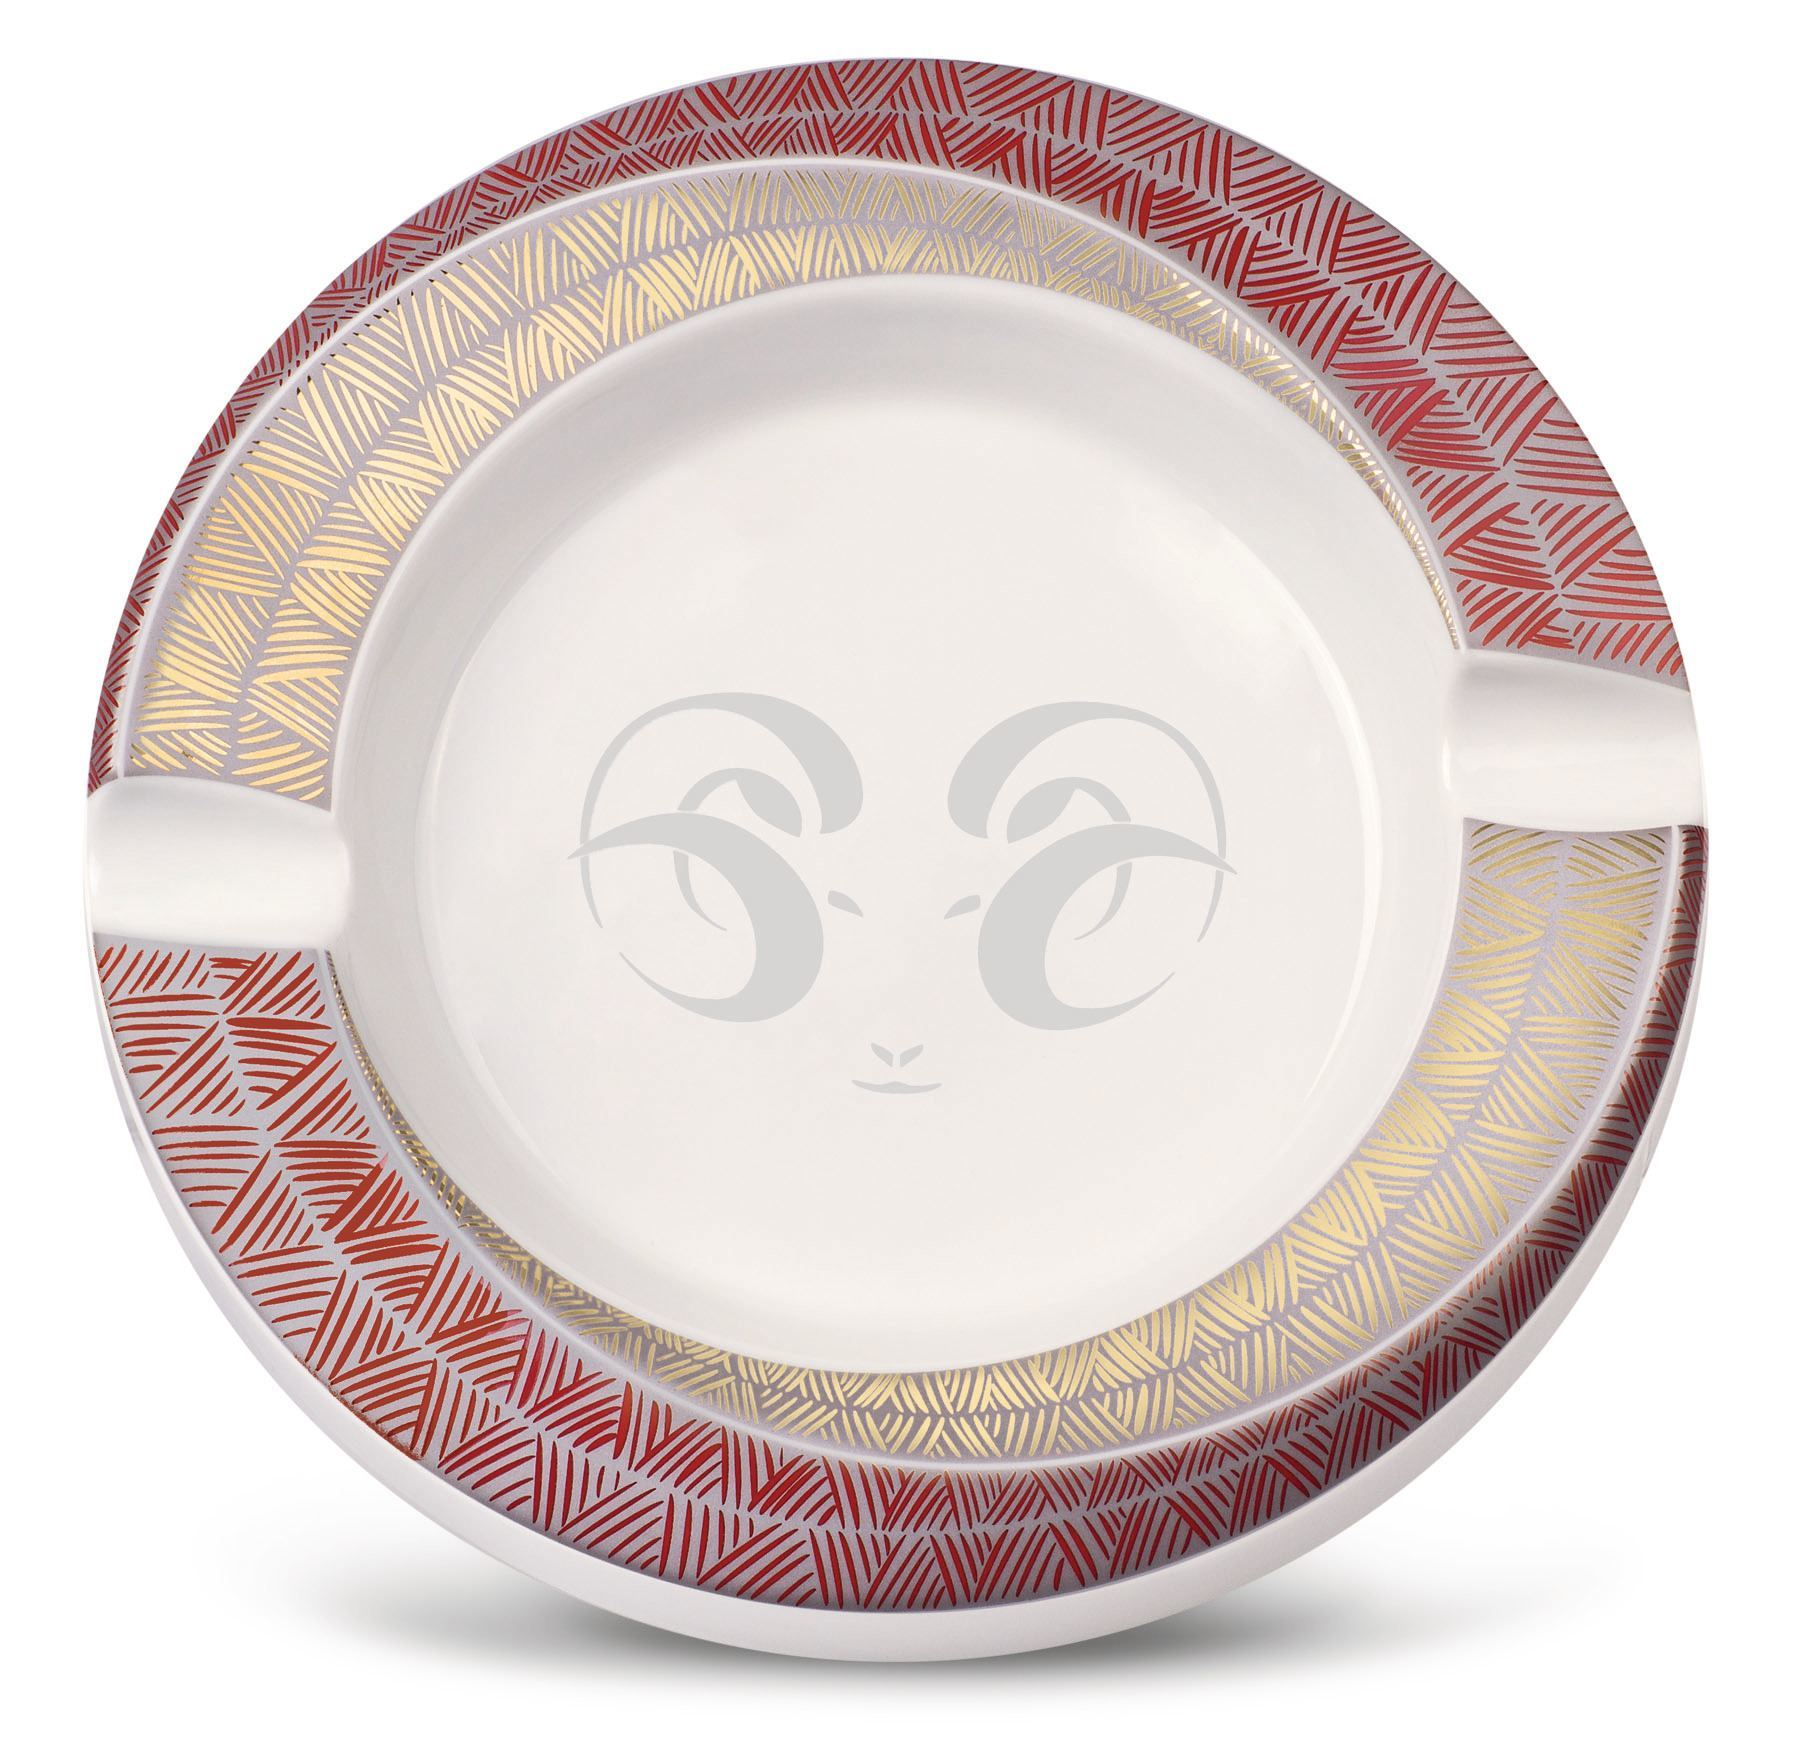 Davidoff Year of the Sheep ashtray